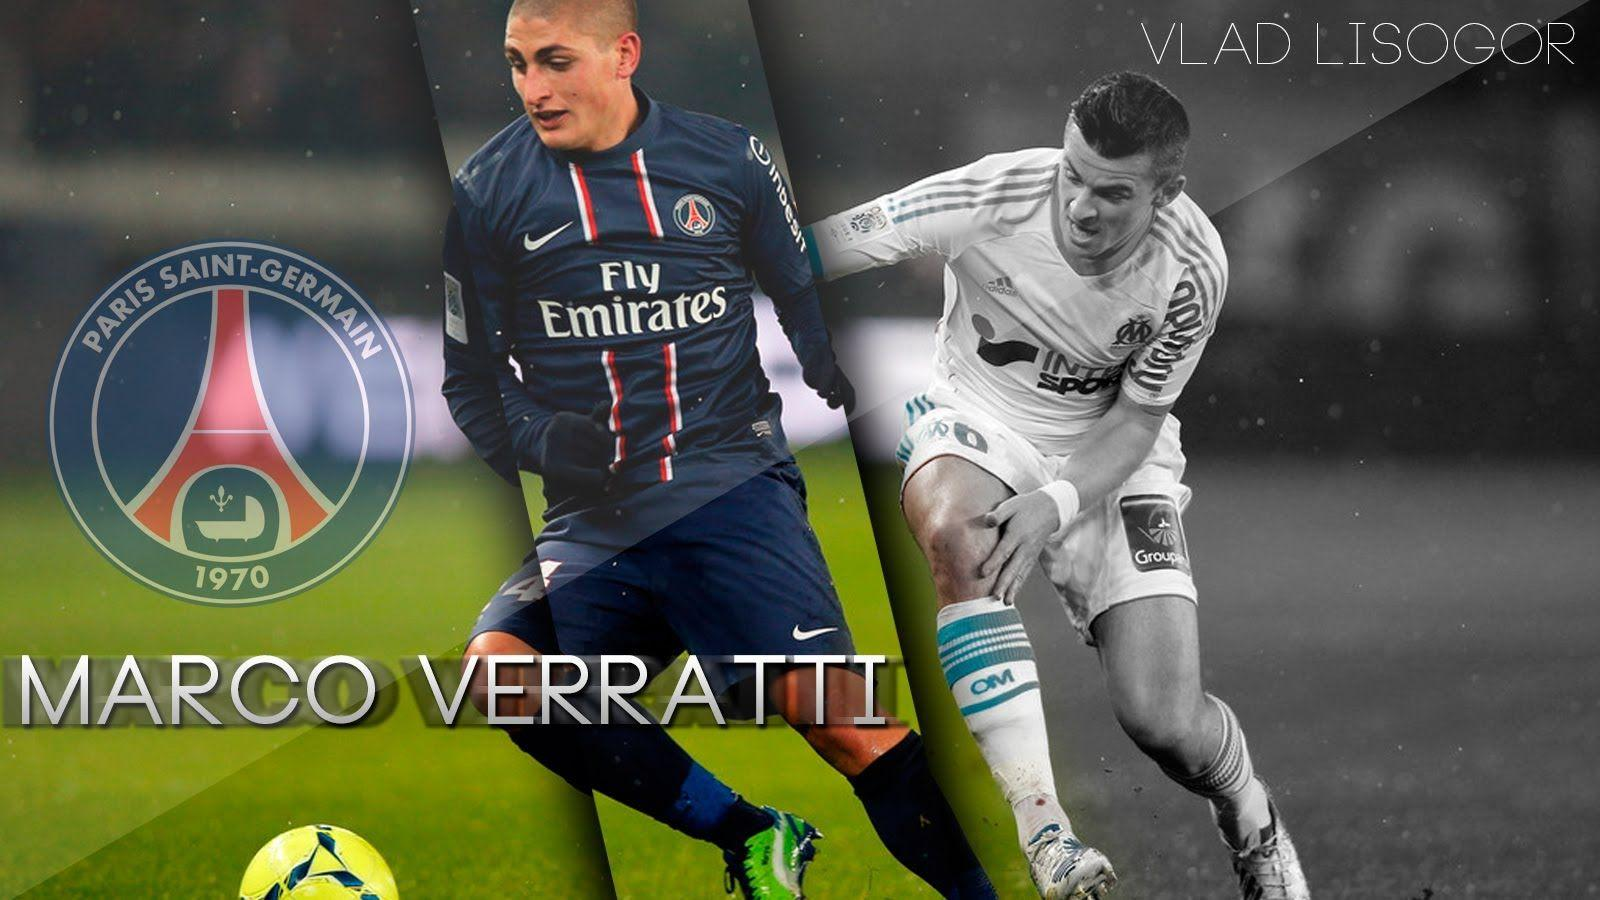 Marco Verratti Wallpapers Wallpaper Cave